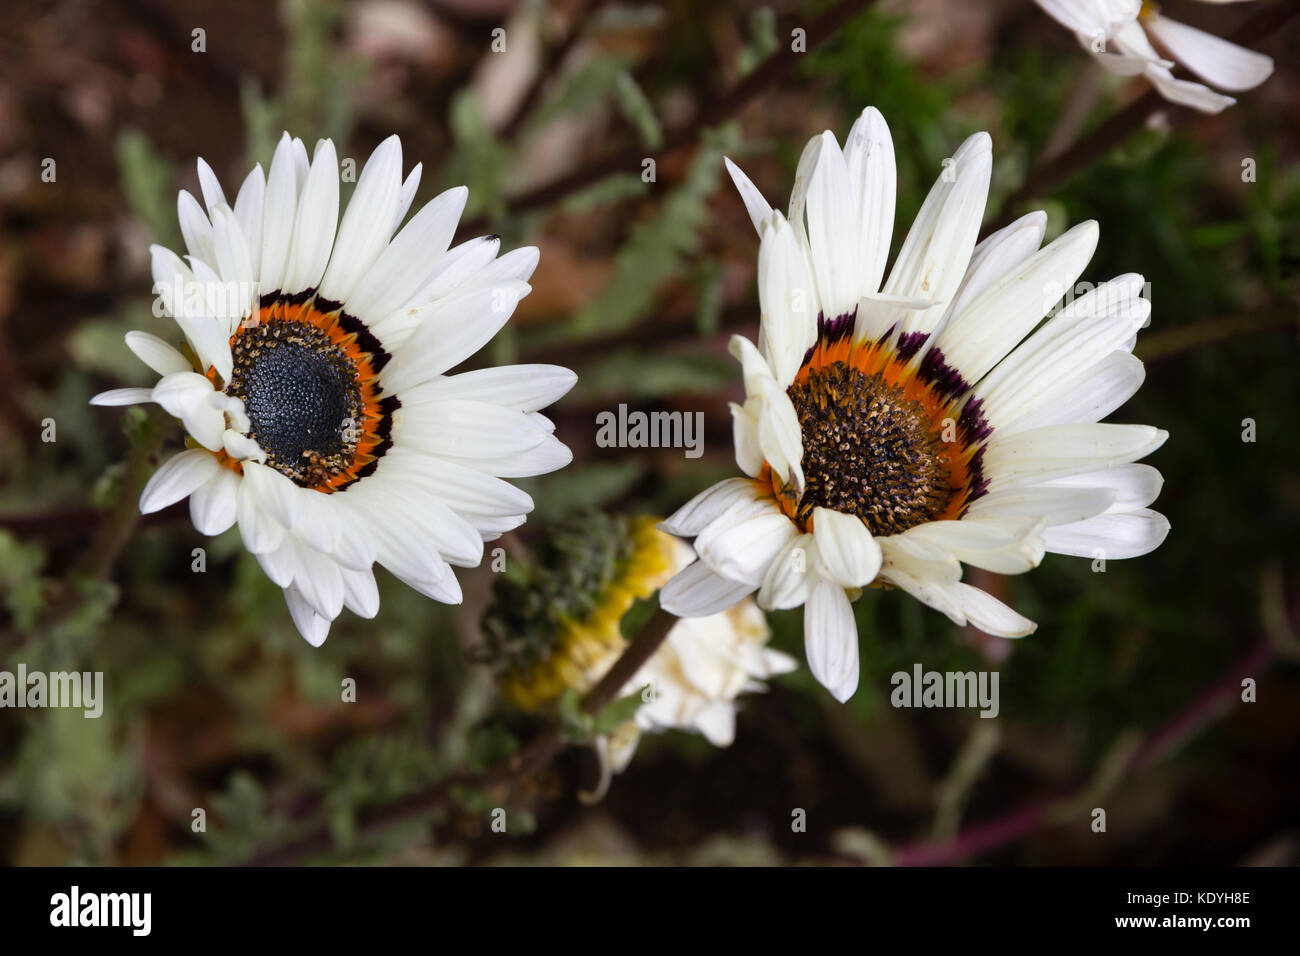 Large white daisy flowers stock photos large white daisy flowers largedark eyed white petalled flowers of the cape daisy venidium fastuosum stock izmirmasajfo